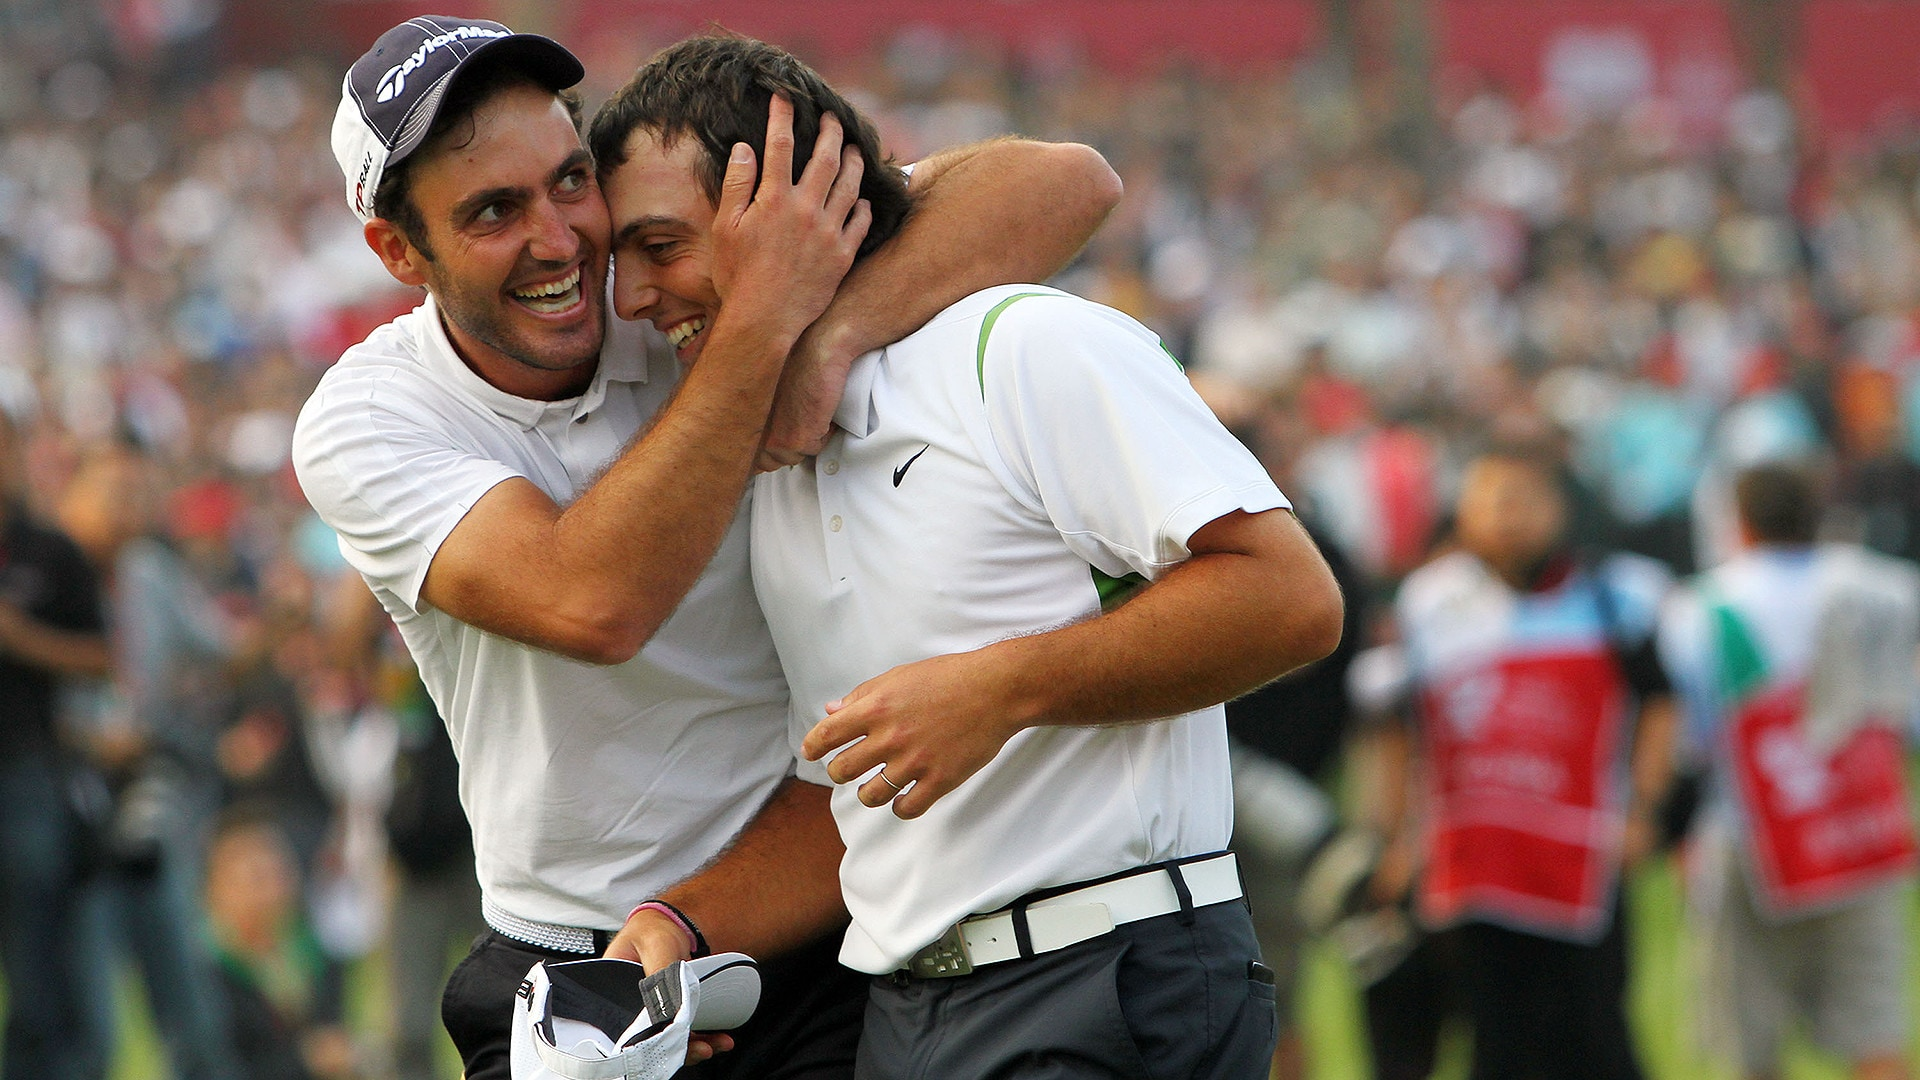 Edoardo and Francesco Molinari after winning the 2009 World Cup. (Getty Images)